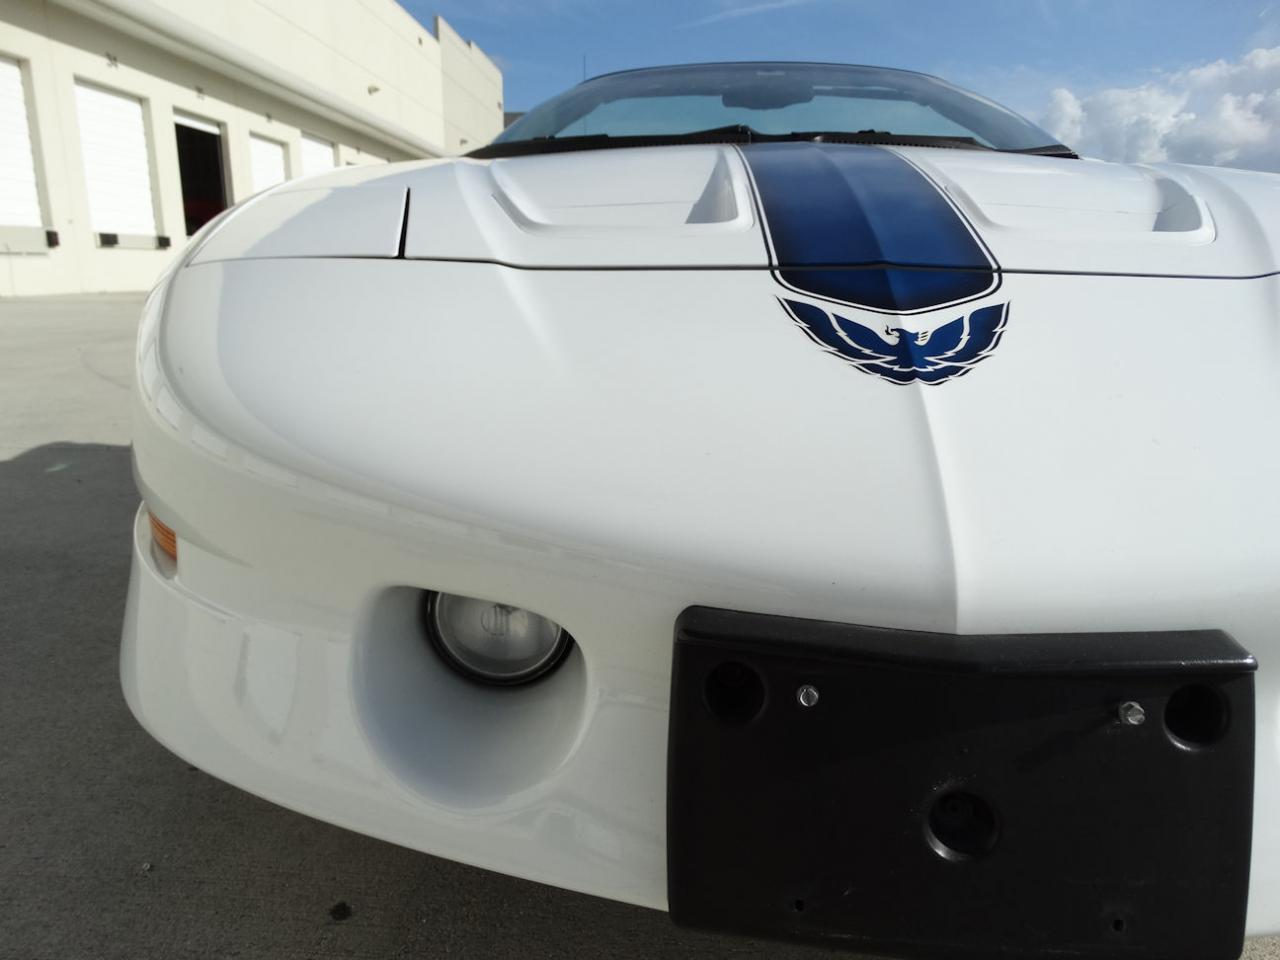 Large Picture of '94 Firebird located in Florida - $22,595.00 Offered by Gateway Classic Cars - Fort Lauderdale - KXRF